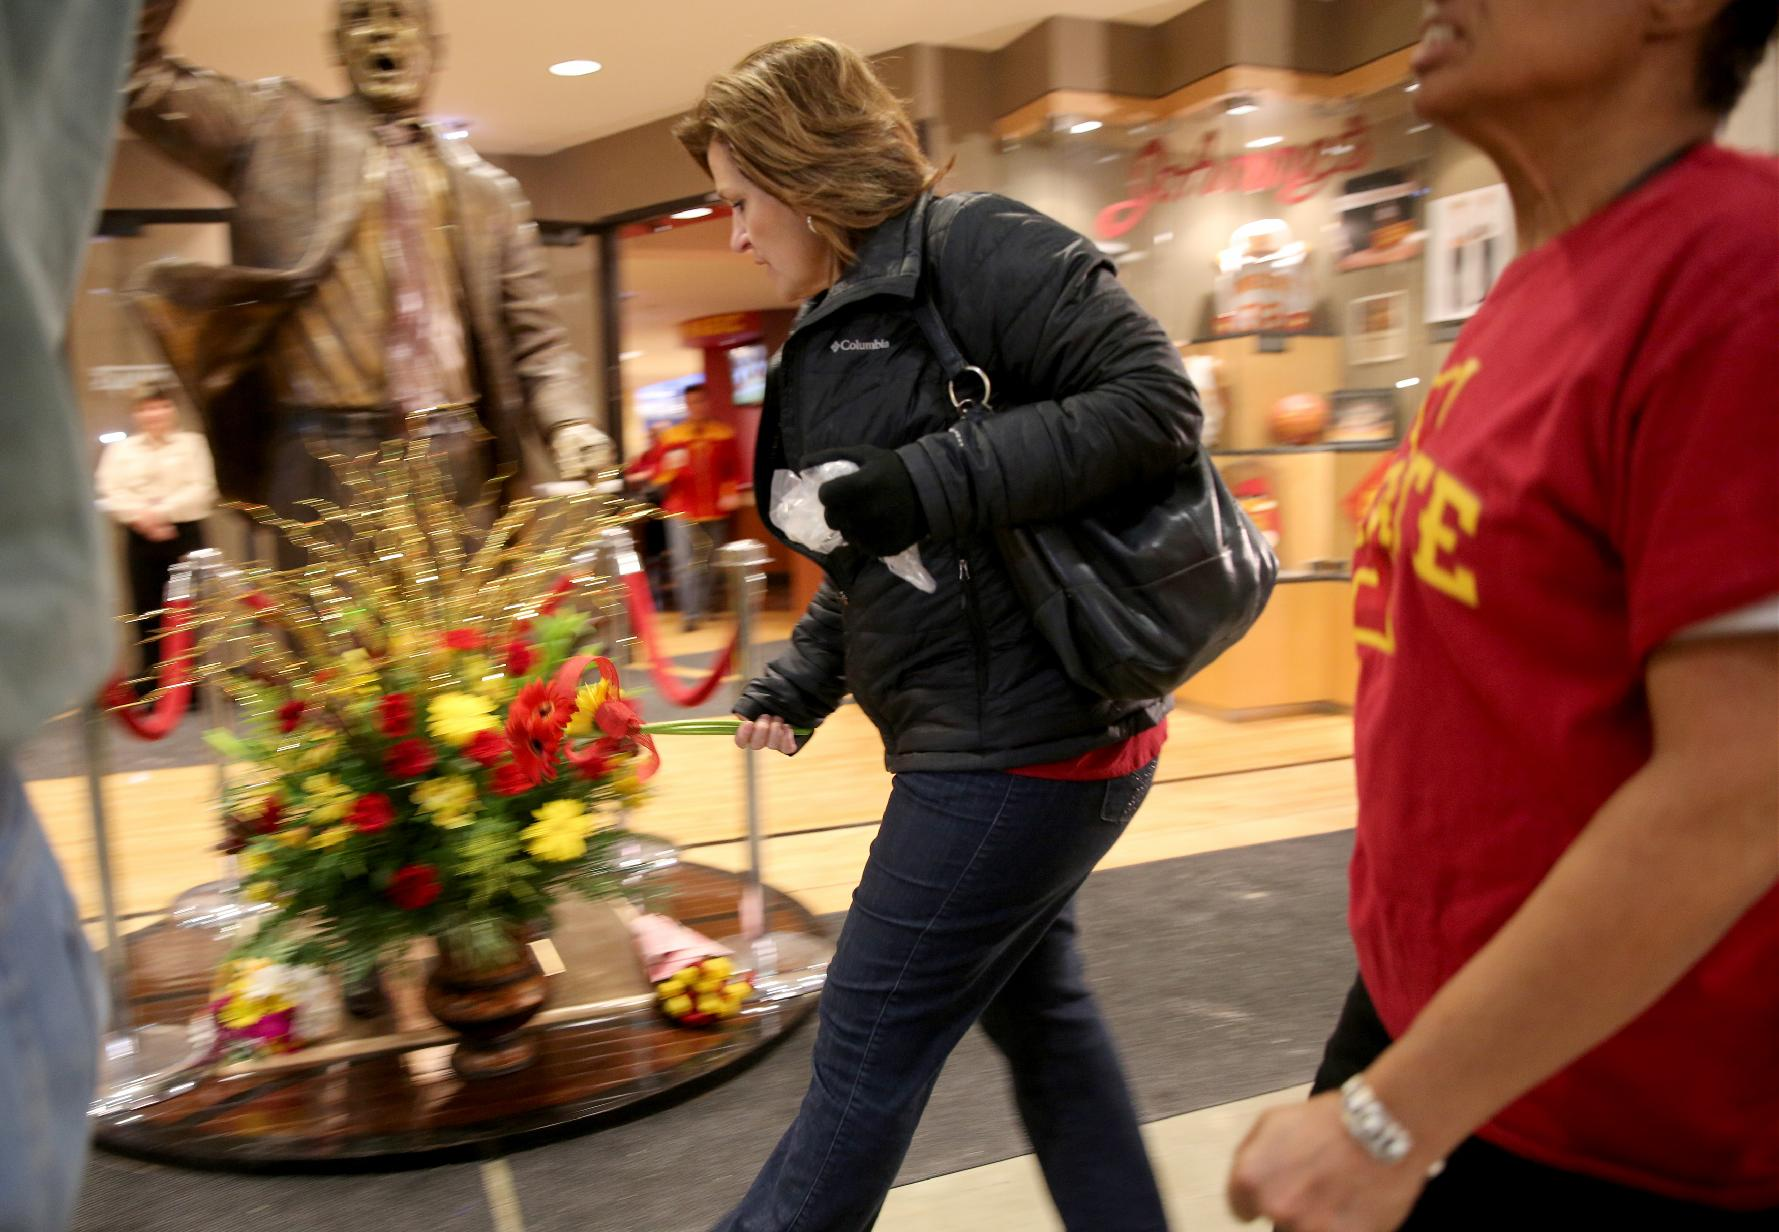 A fan stop drops off flowers at the statue of former Iowa State coach Johnny Orr before towa State's NCAA college basketball game against Northern Illinois at Hilton Coliseum in Ames, Iowa, Tuesday, Dec. 31, 2013. Orr, 86, who also coached at Michigan, has died, Iowa State confirmed Tuesday